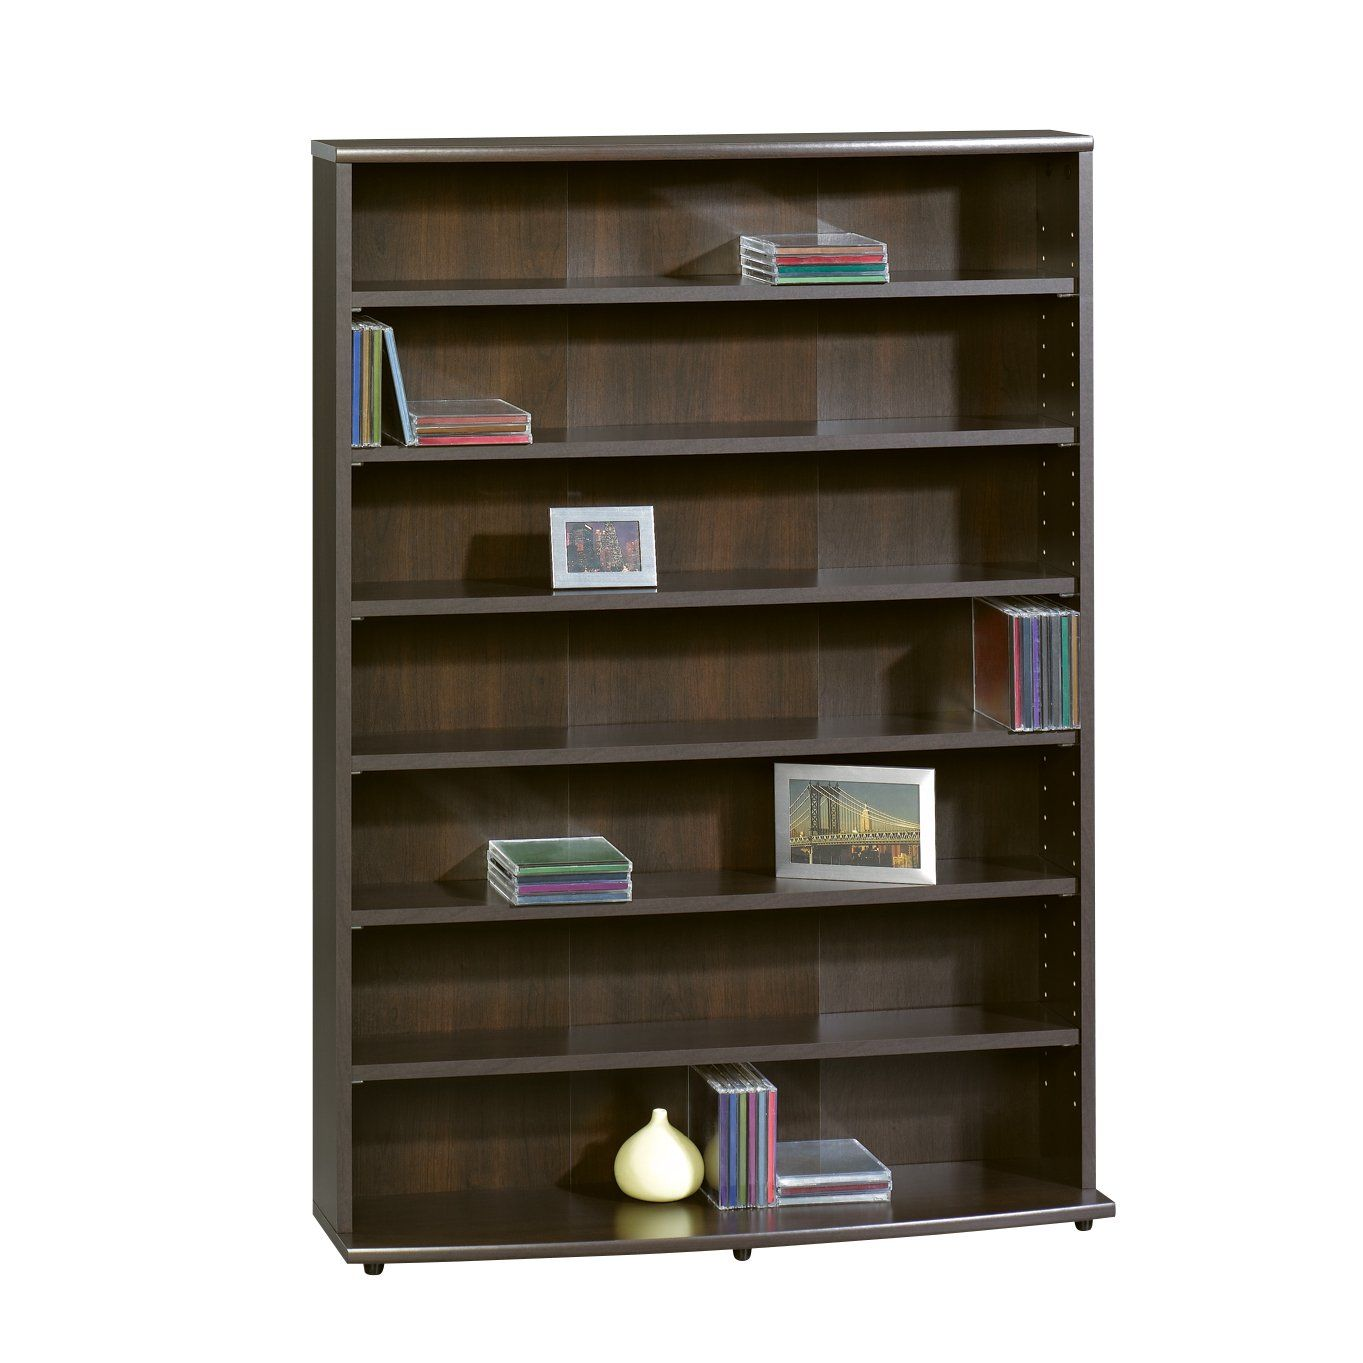 Sauder Multimedia Storage Tower Cinnamon Cherry Is The Manufacturer O Sullivan A Sub Brand Of Six Adjule Shelves Holds 280 Dvd S Or